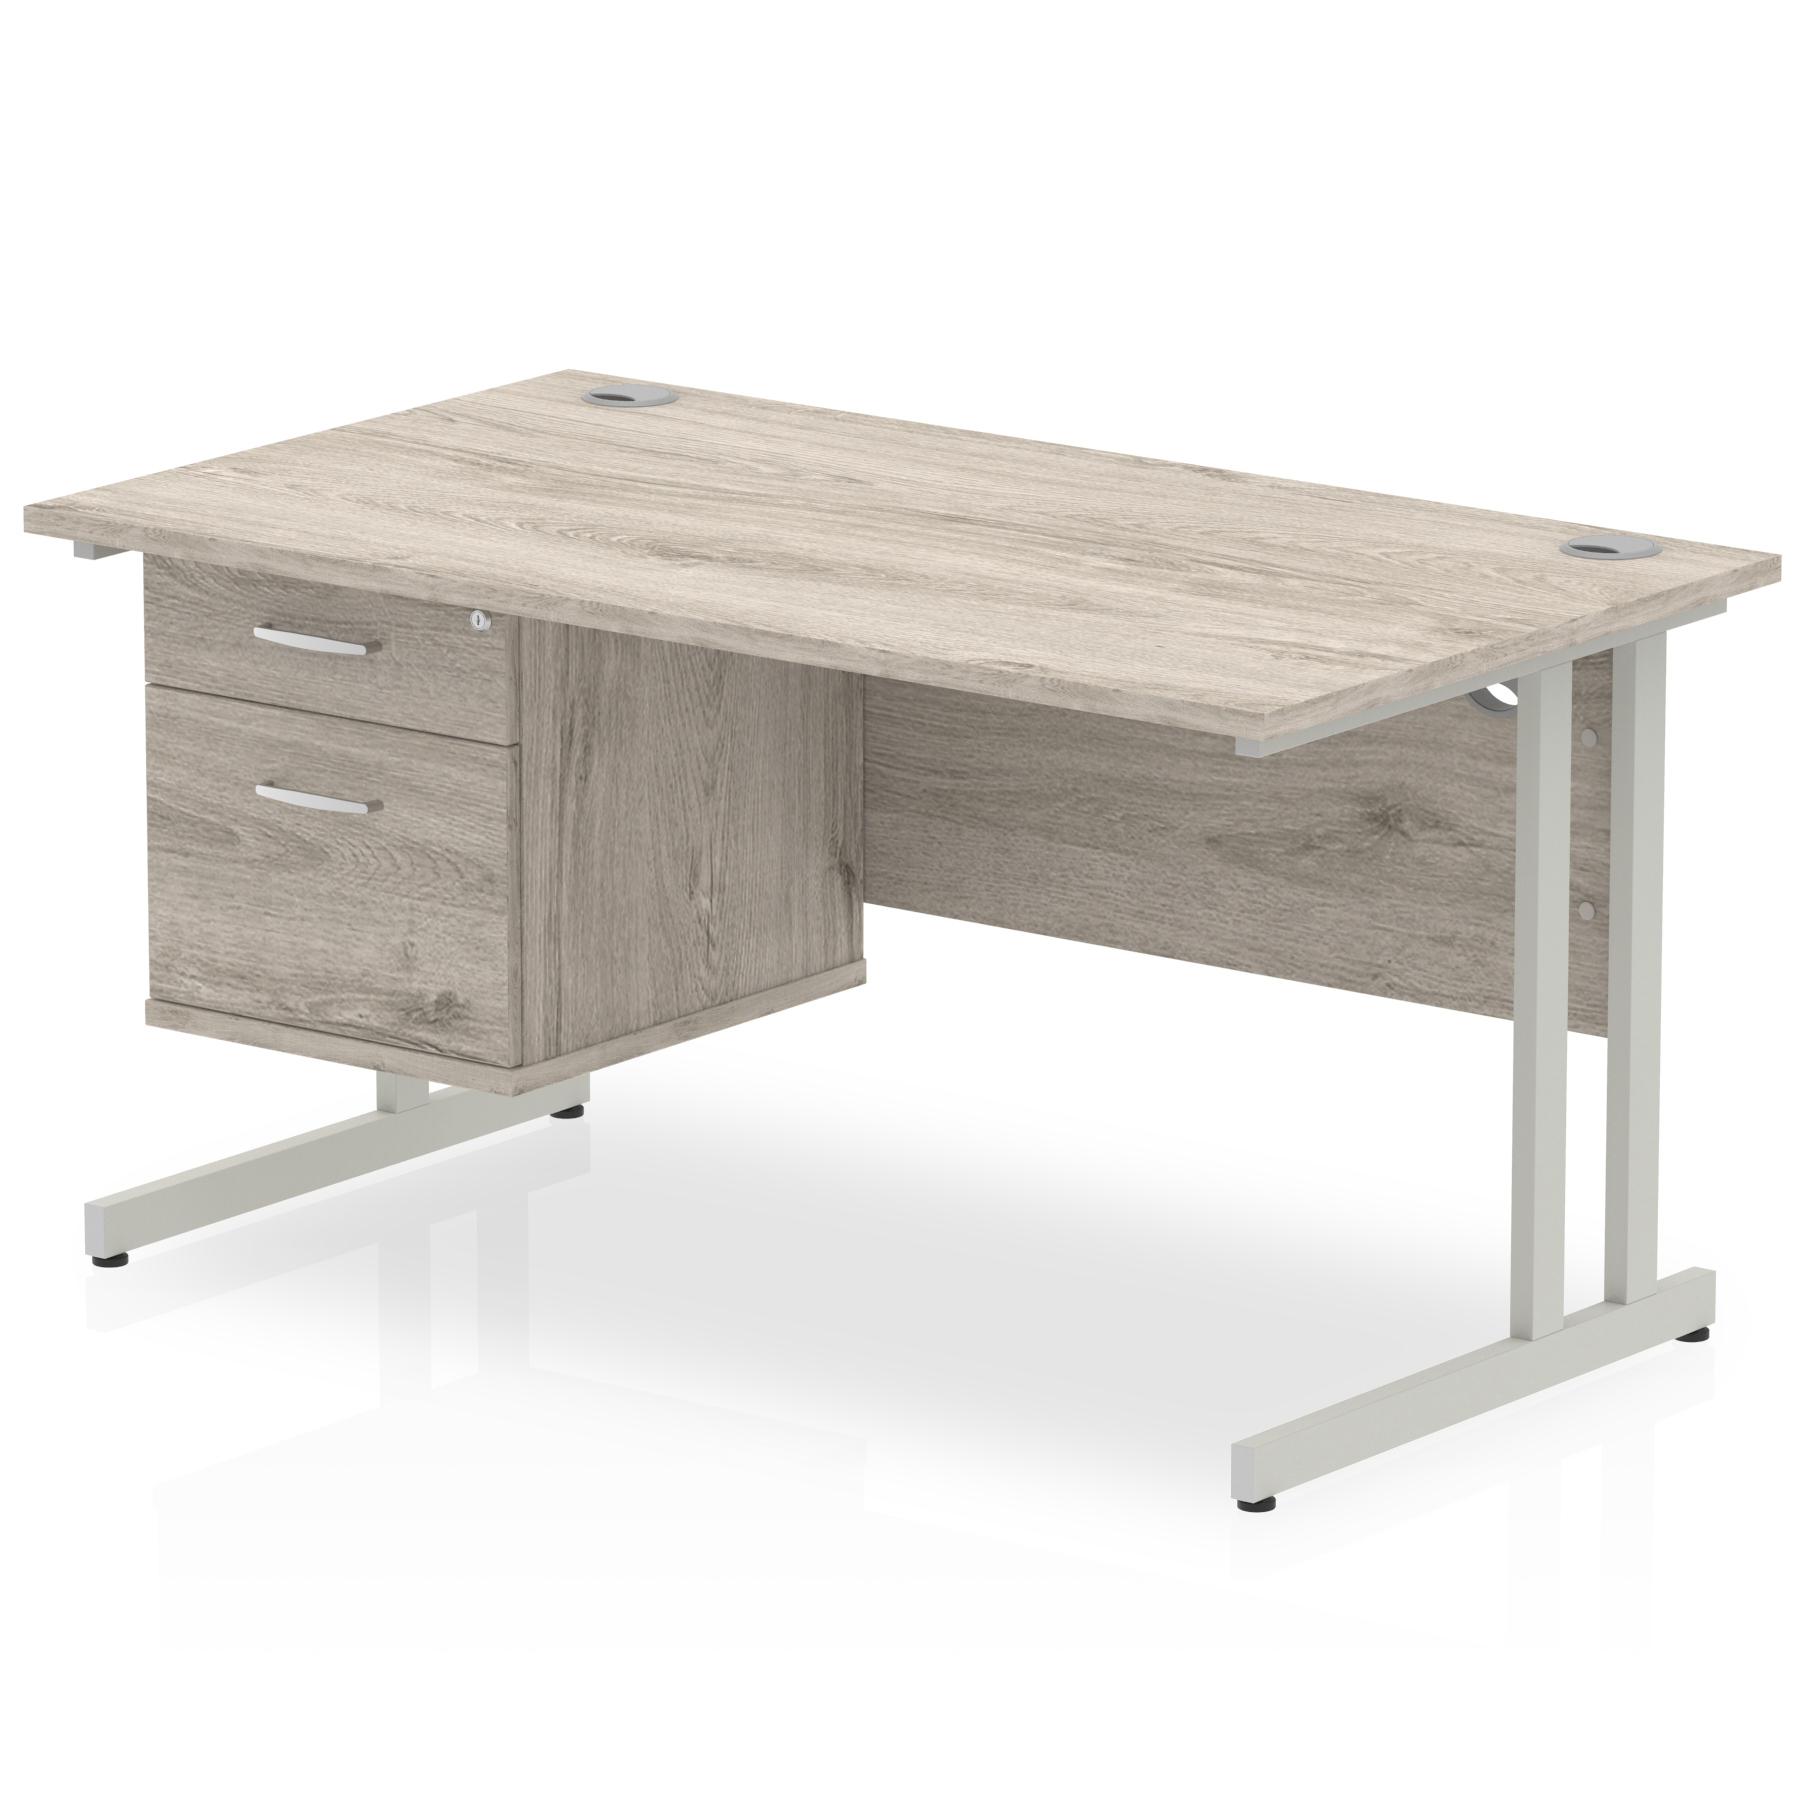 Desks Trexus Rectangular Desk Silver Cantilever Leg 1400x800mm Fixed Ped 2 Drawers Grey Oak Ref I003461